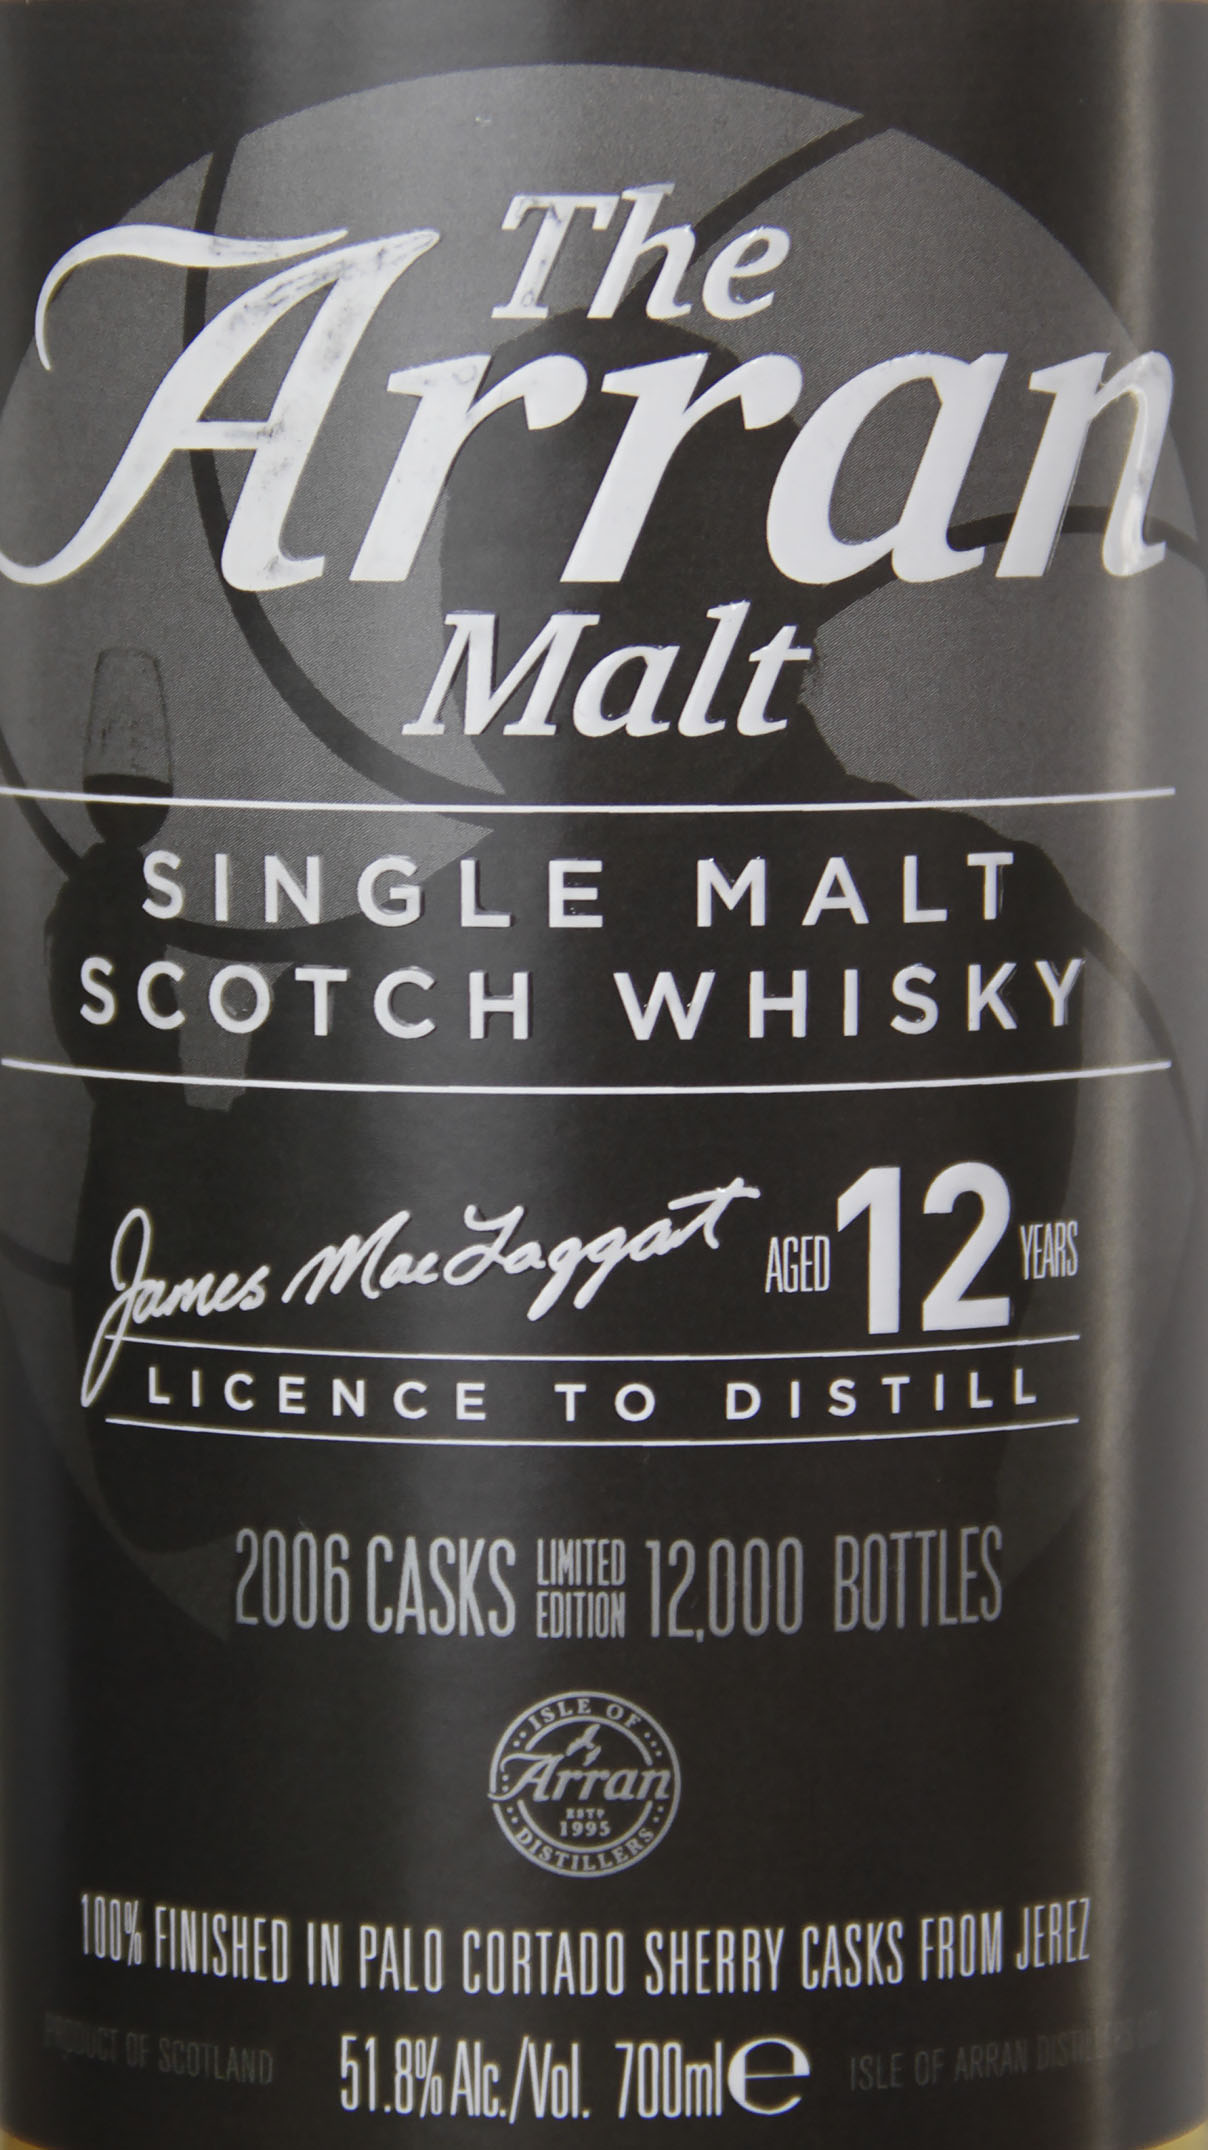 Arran Master of Distilling 2